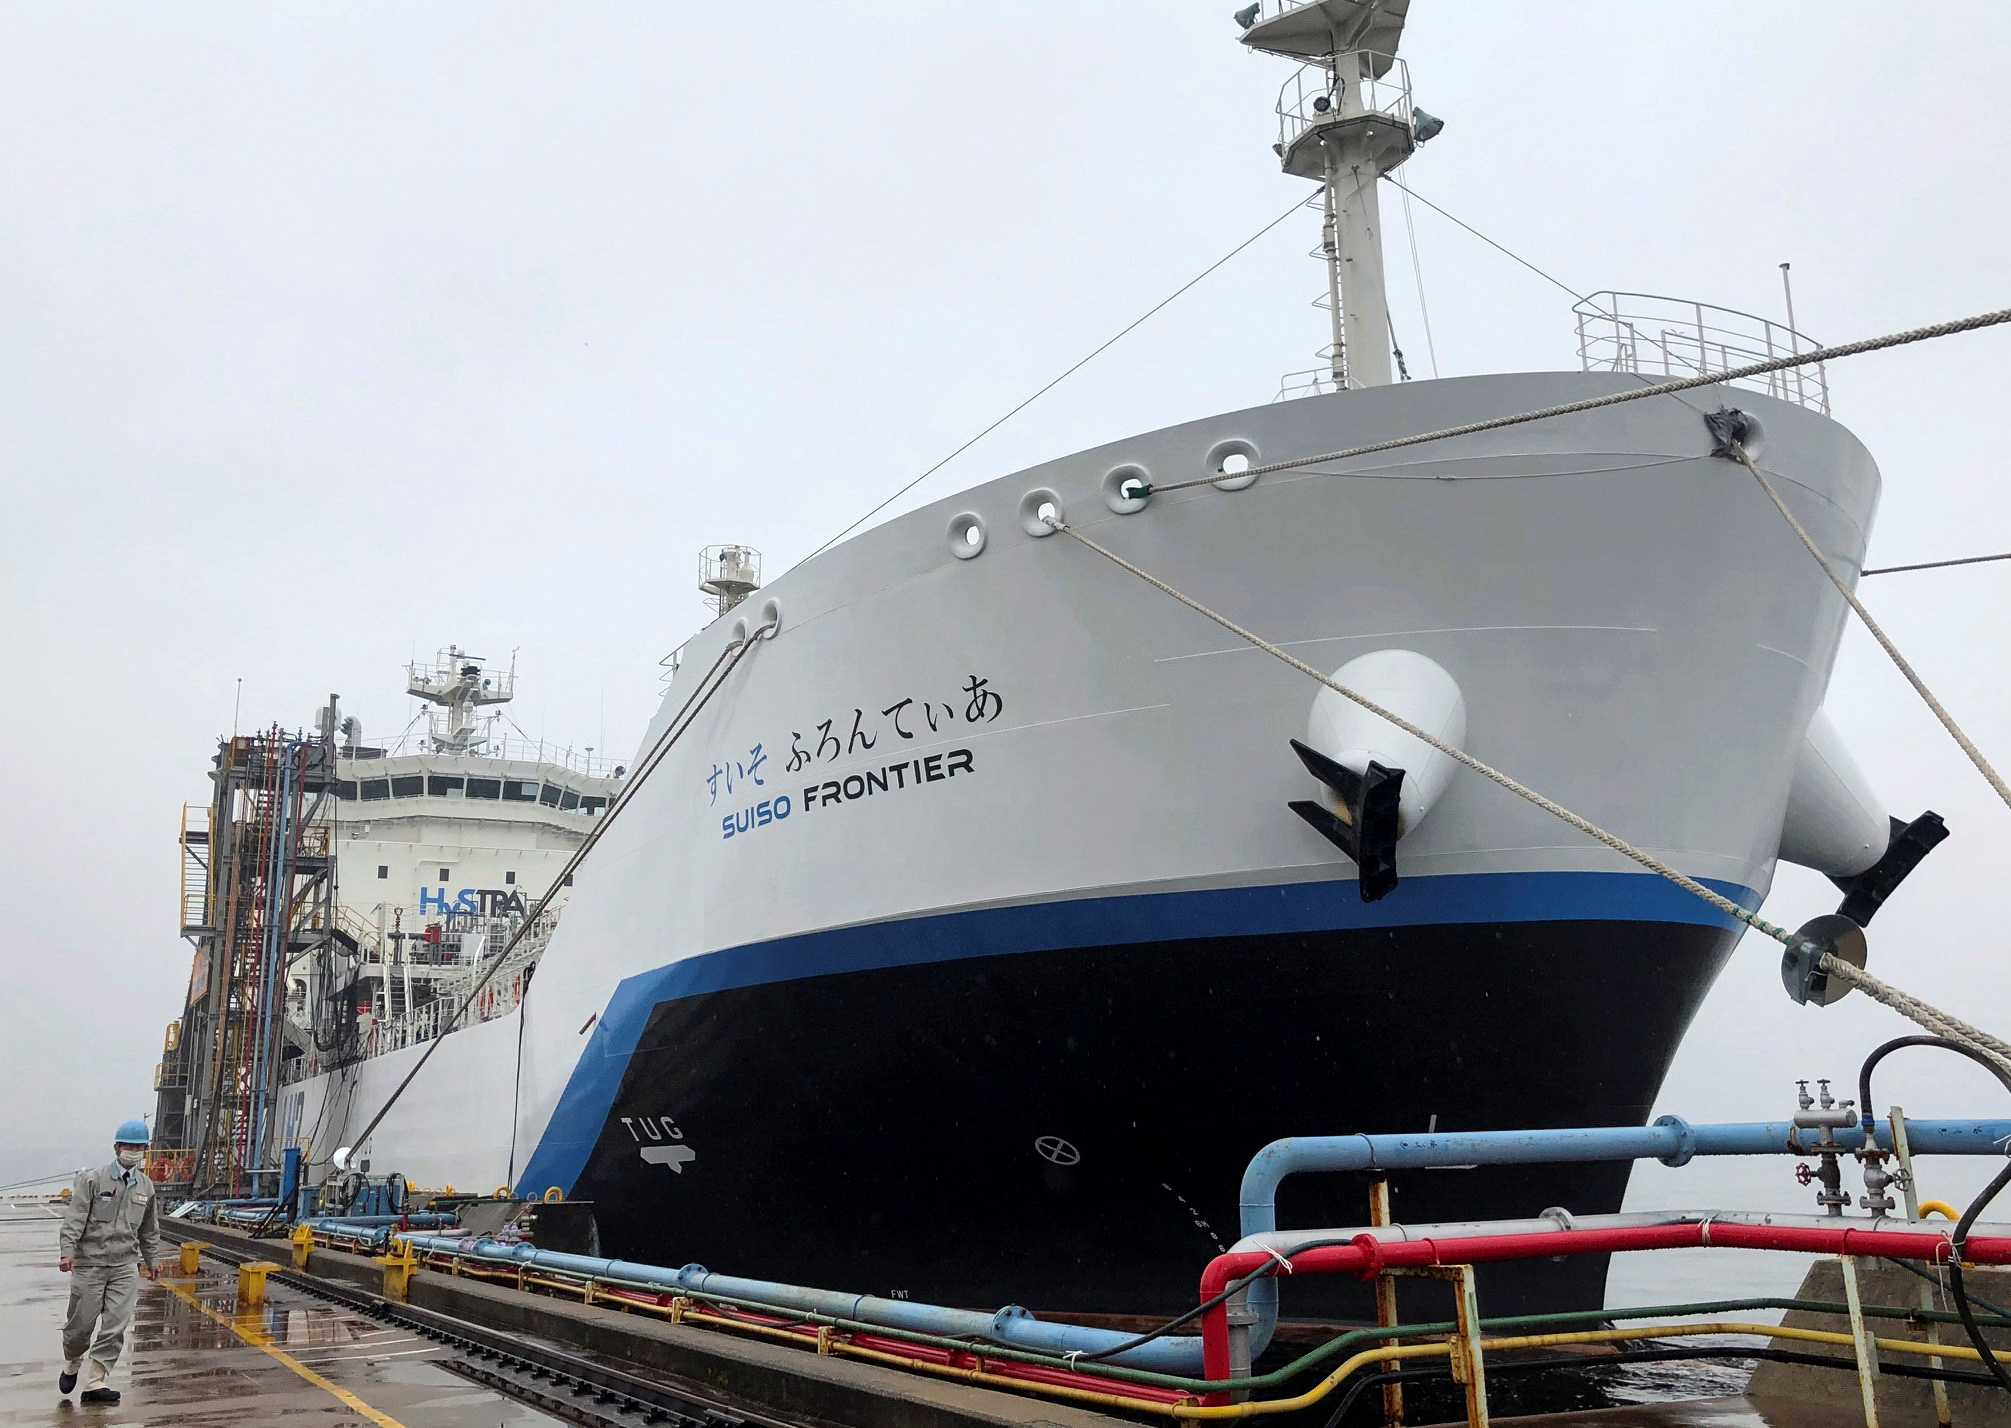 The liquefied hydrogen carrier SUISO FRONTIER, built by Kawasaki Heavy Industries and is due to transport its first cargo of hydrogen extracted from brown coal from Australia to Japan, is docked at Kobe Works yard in Kobe, western Japan January 22, 2021. REUTERS/Yuka Obayashi